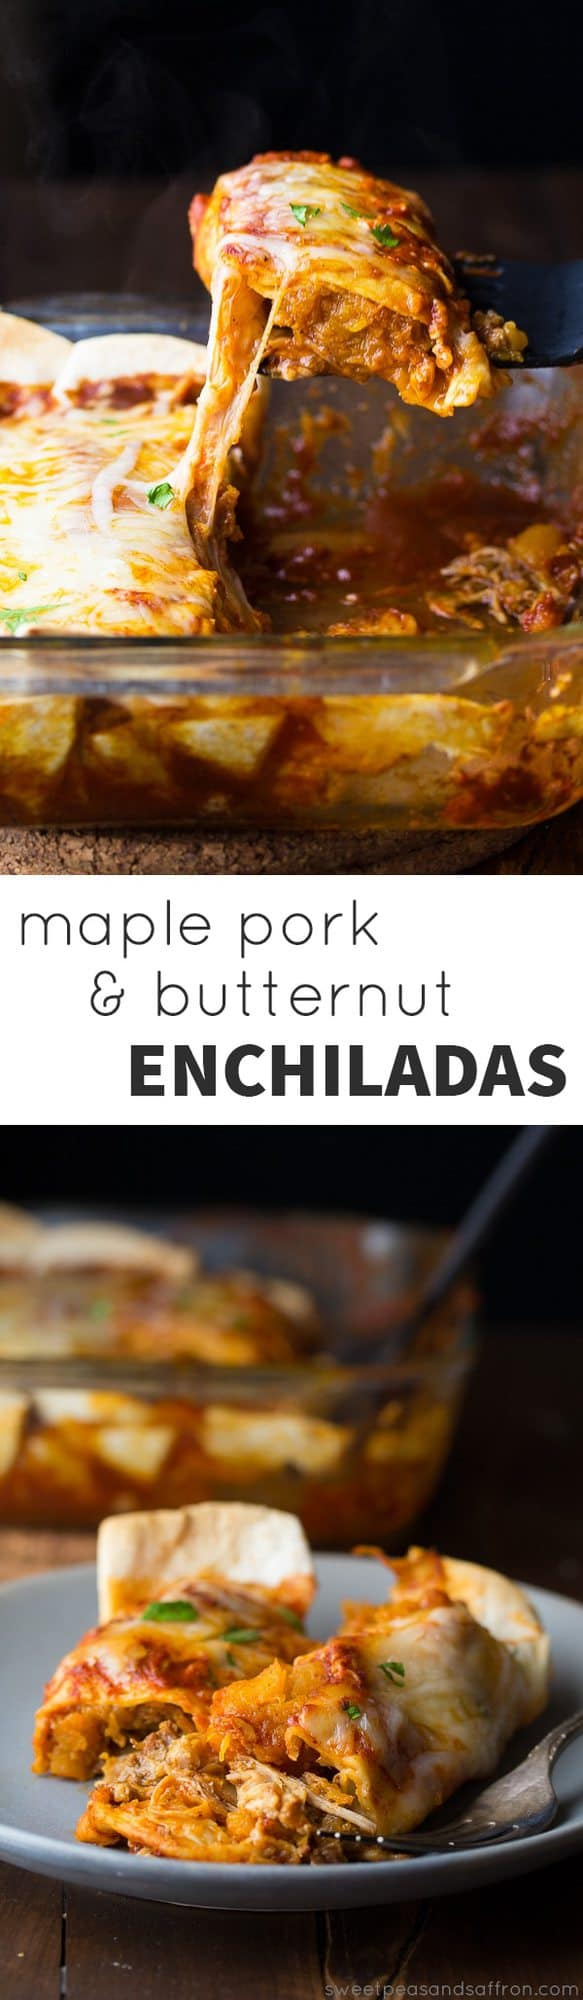 Maple Pulled Pork Enchiladas with Butternut Squash (slow cooker) @sweetpeasaffron